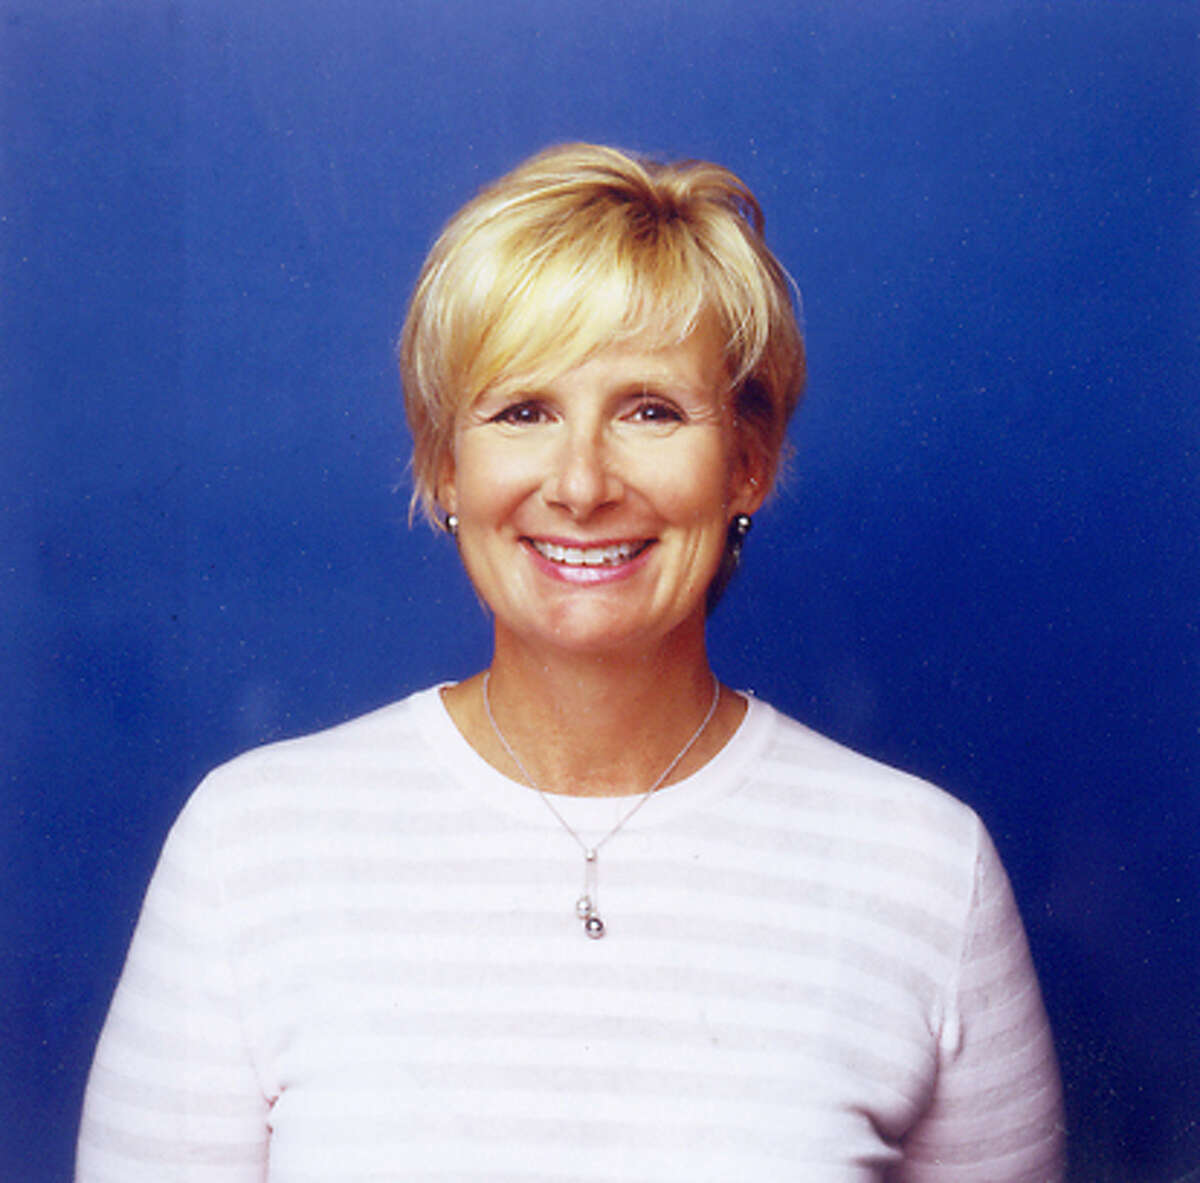 Photo of Cynthia Harriss, the new president of Gap brand (former president of Gap Outlet).